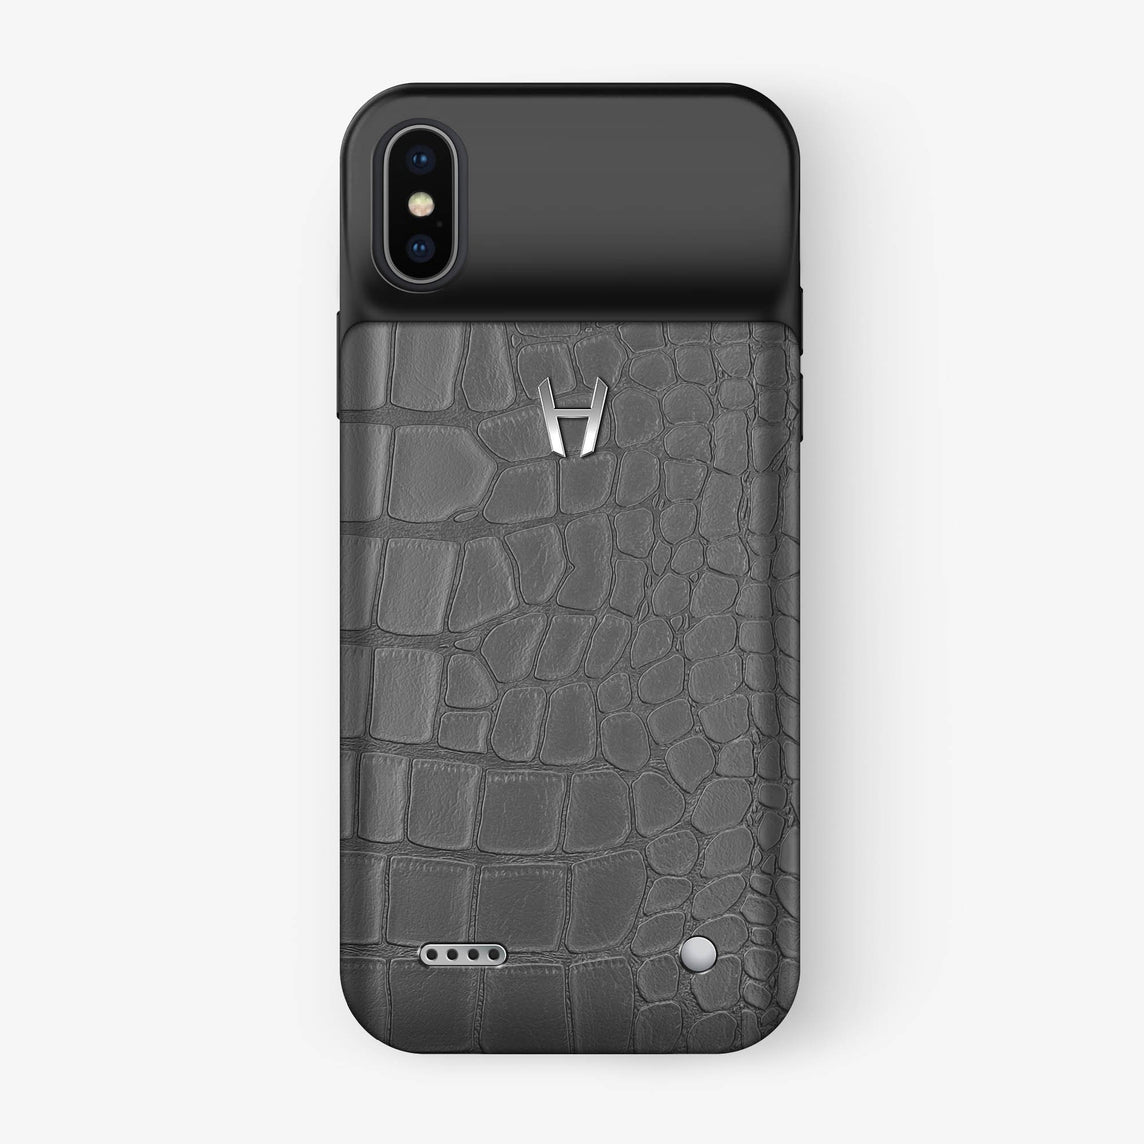 Alligator Battery Case iPhone X/Xs | Grey - Stainless Steel - Hadoro